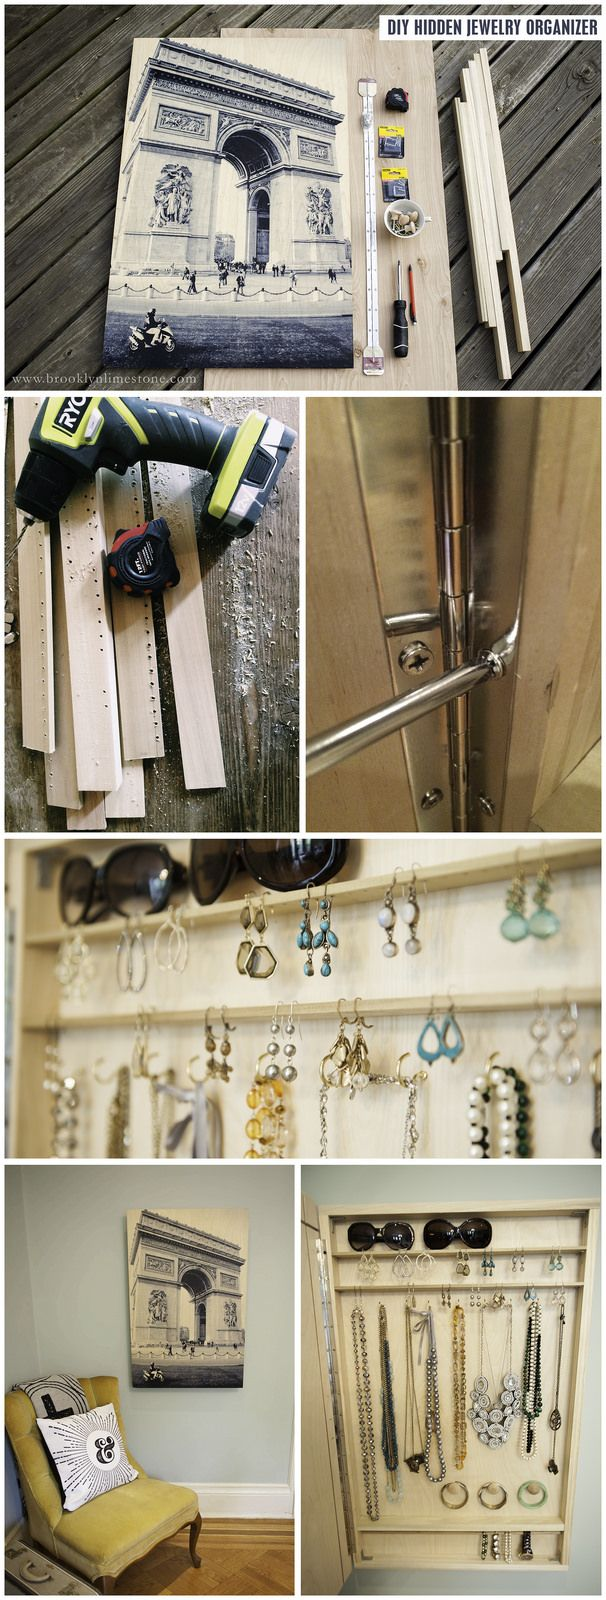 DIY Hidden Jewelry Organizer